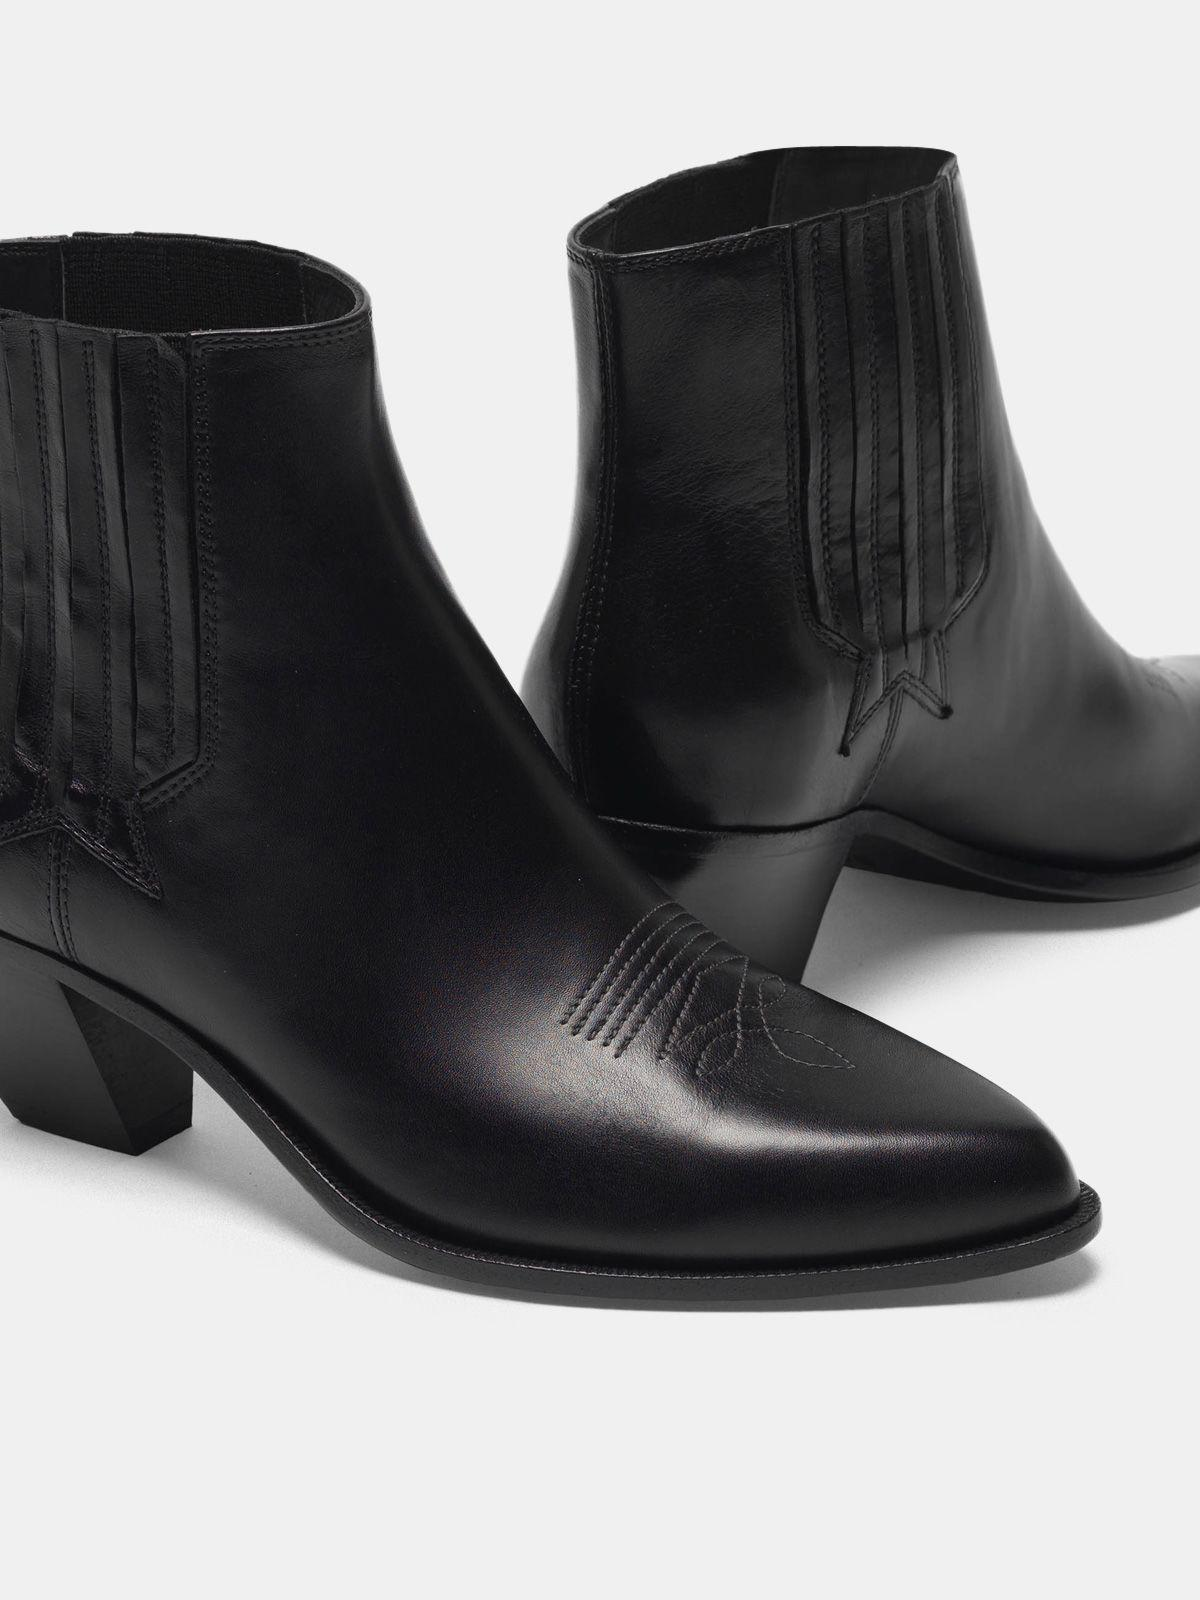 Sunset ankle boots in black leather 3